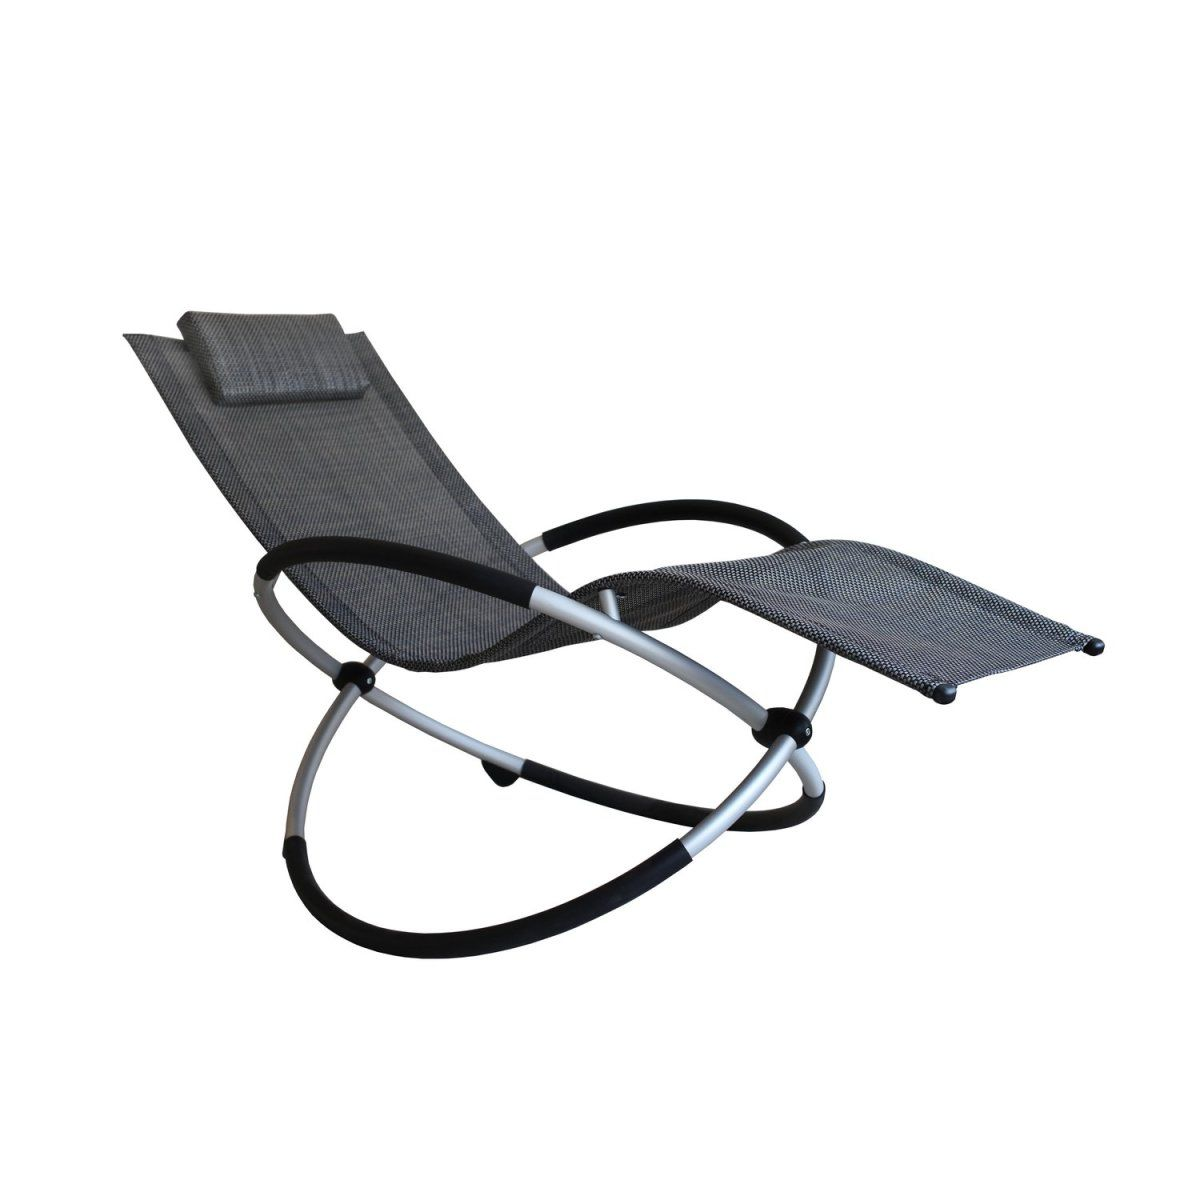 Pin By Ladendirekt On Gartenmöbel Garden Loungers Outdoor Chairs